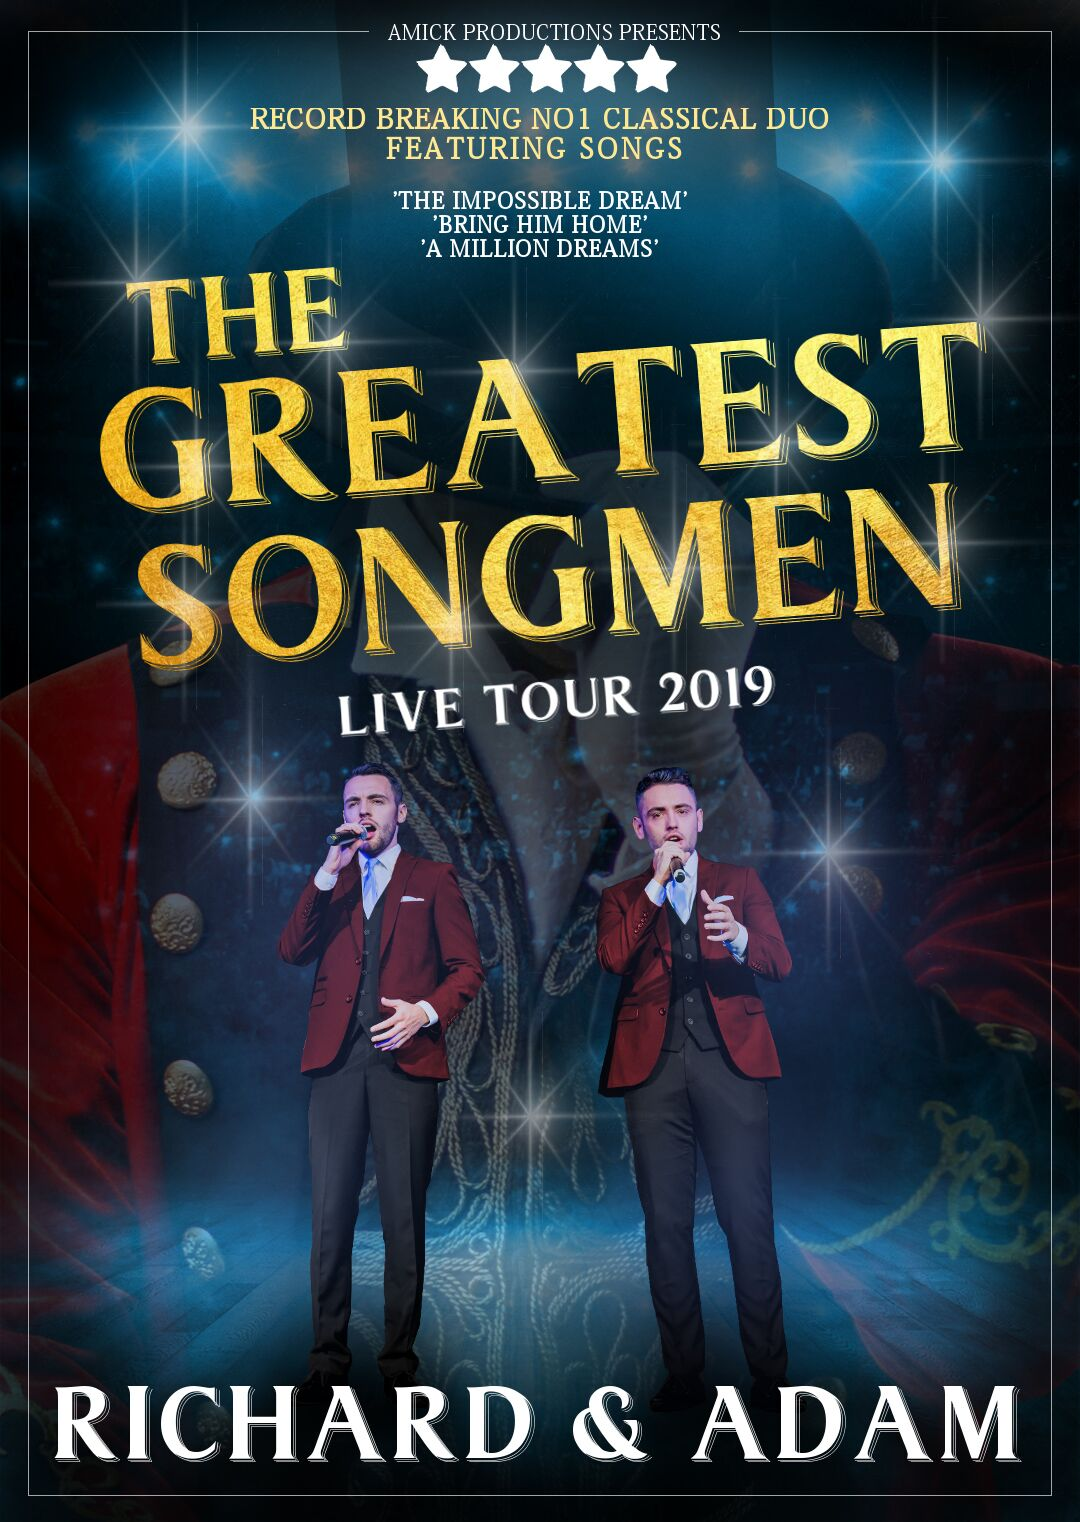 RICHARD & ADAM - THE GREATEST SHOWMEN